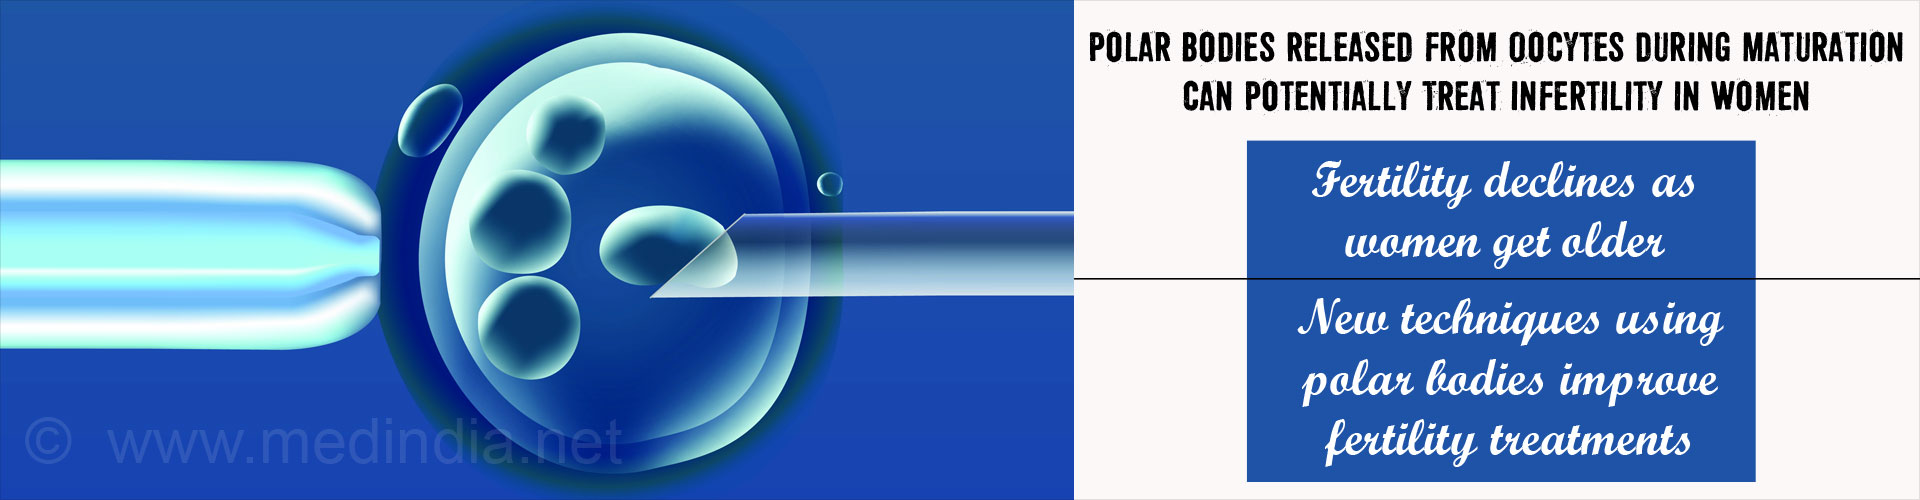 Possible Use of Polar Body for Infertility Treatment